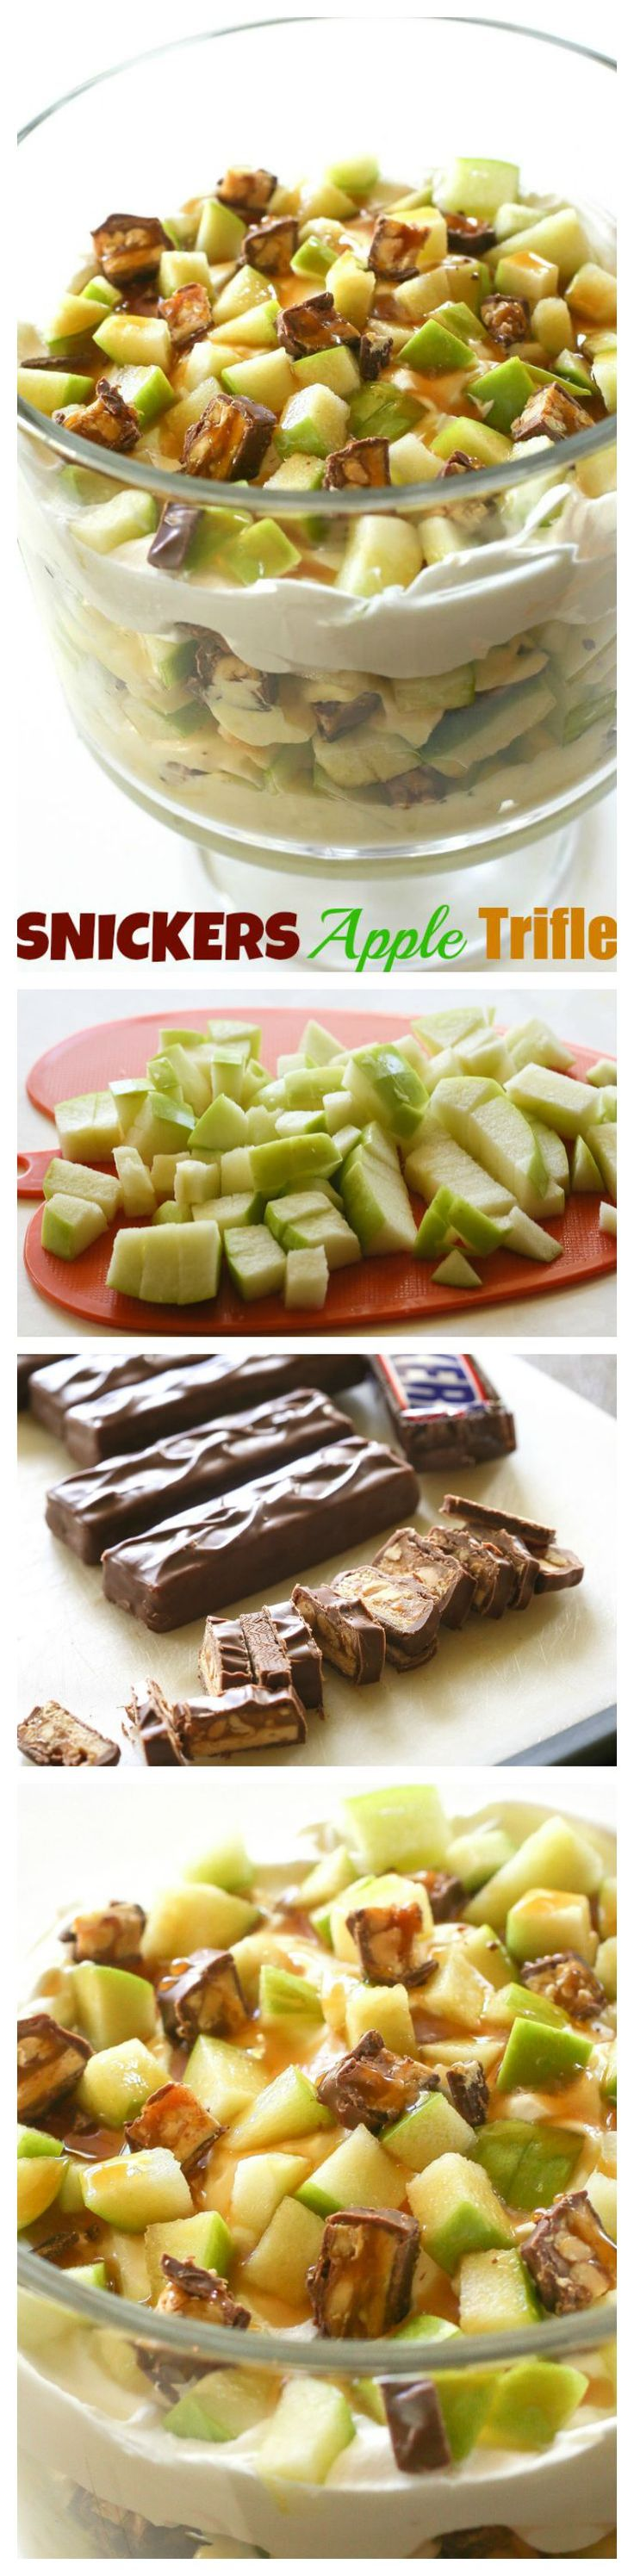 plain silver rings This Snickers Apple Trifle is a super easy dessert that is impressive  Great for feeding a crowd  http   goo gl cHHJ1Q